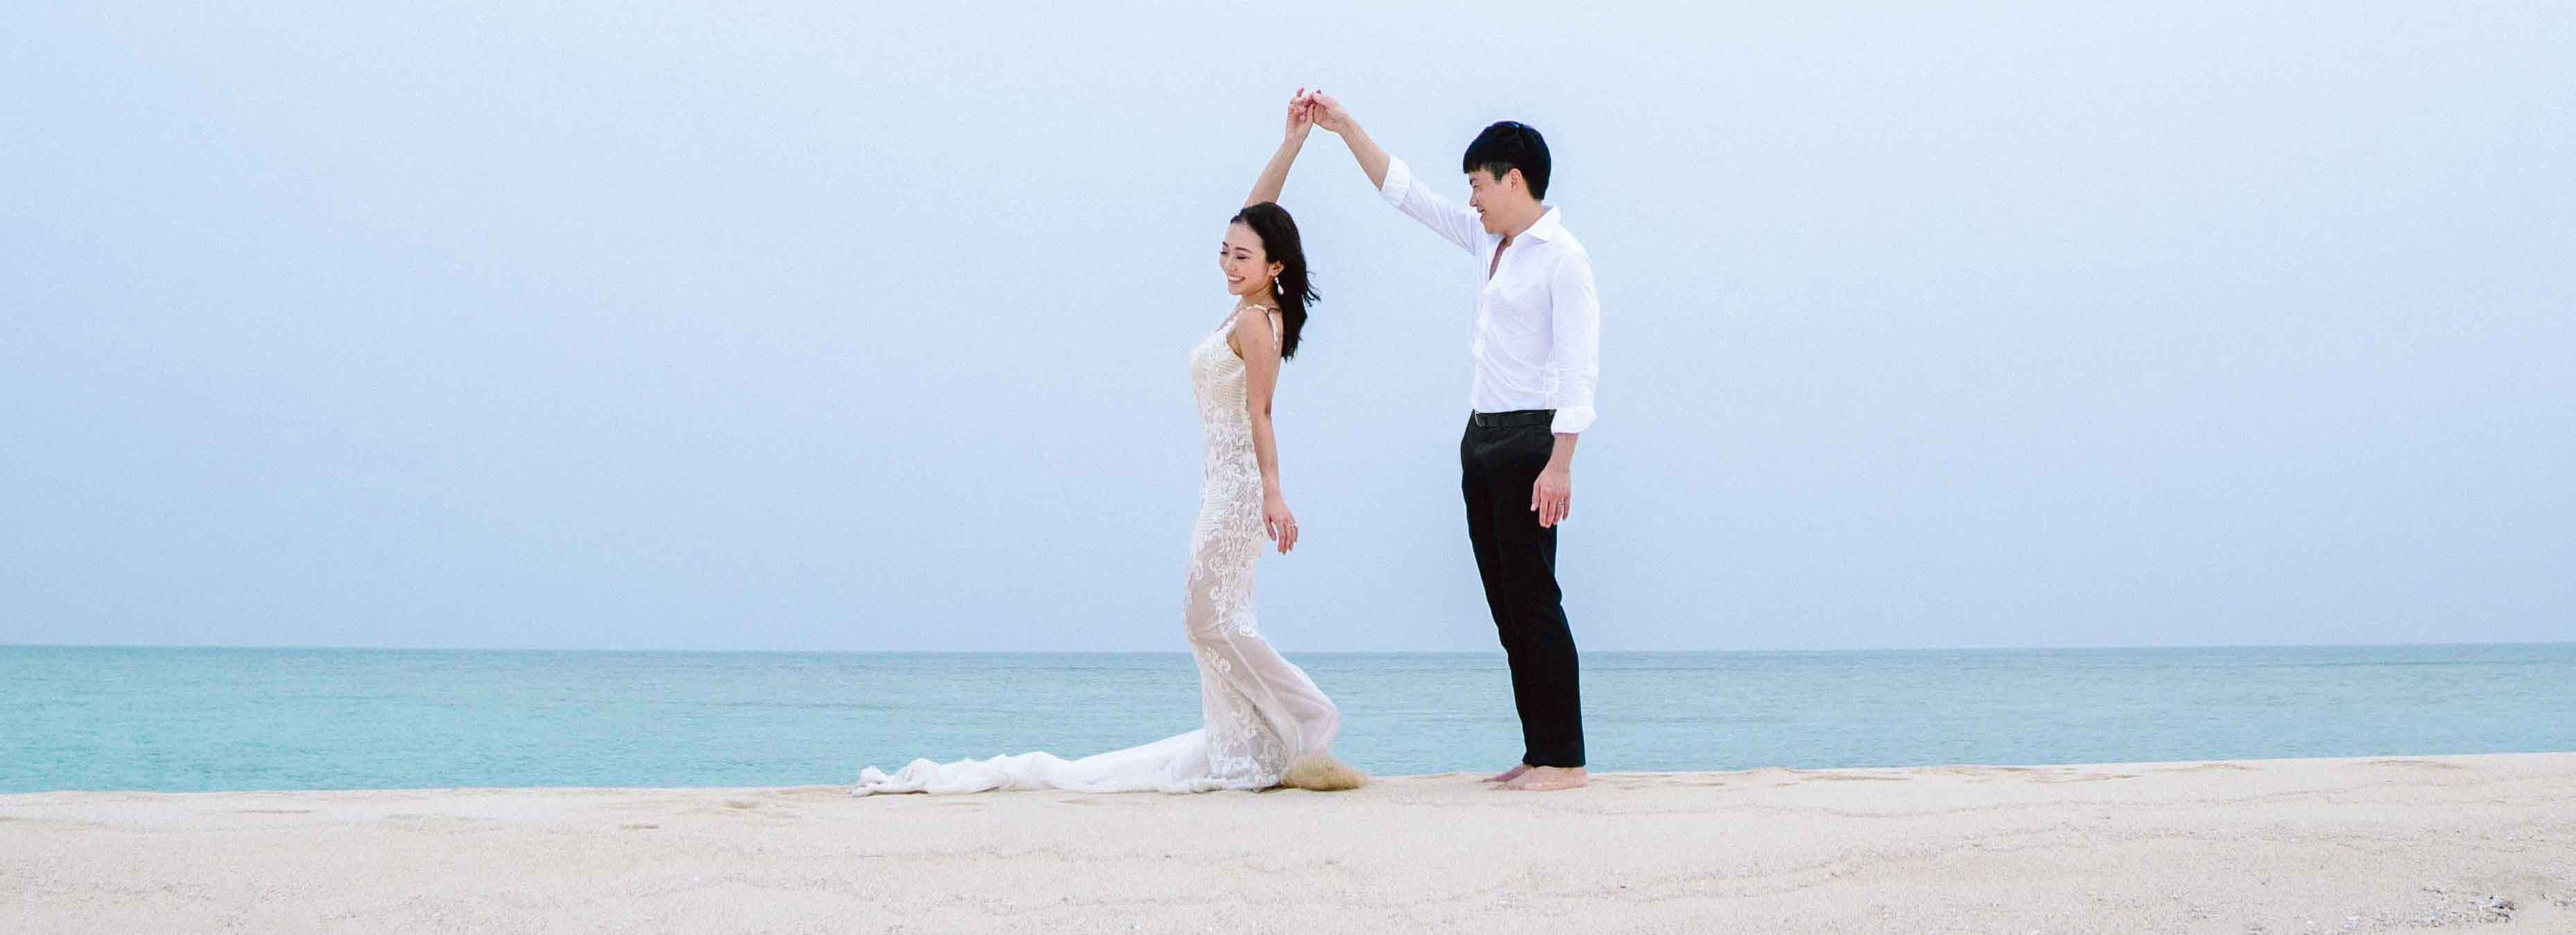 cropped_wedding_couple_dancing_on_the_beach